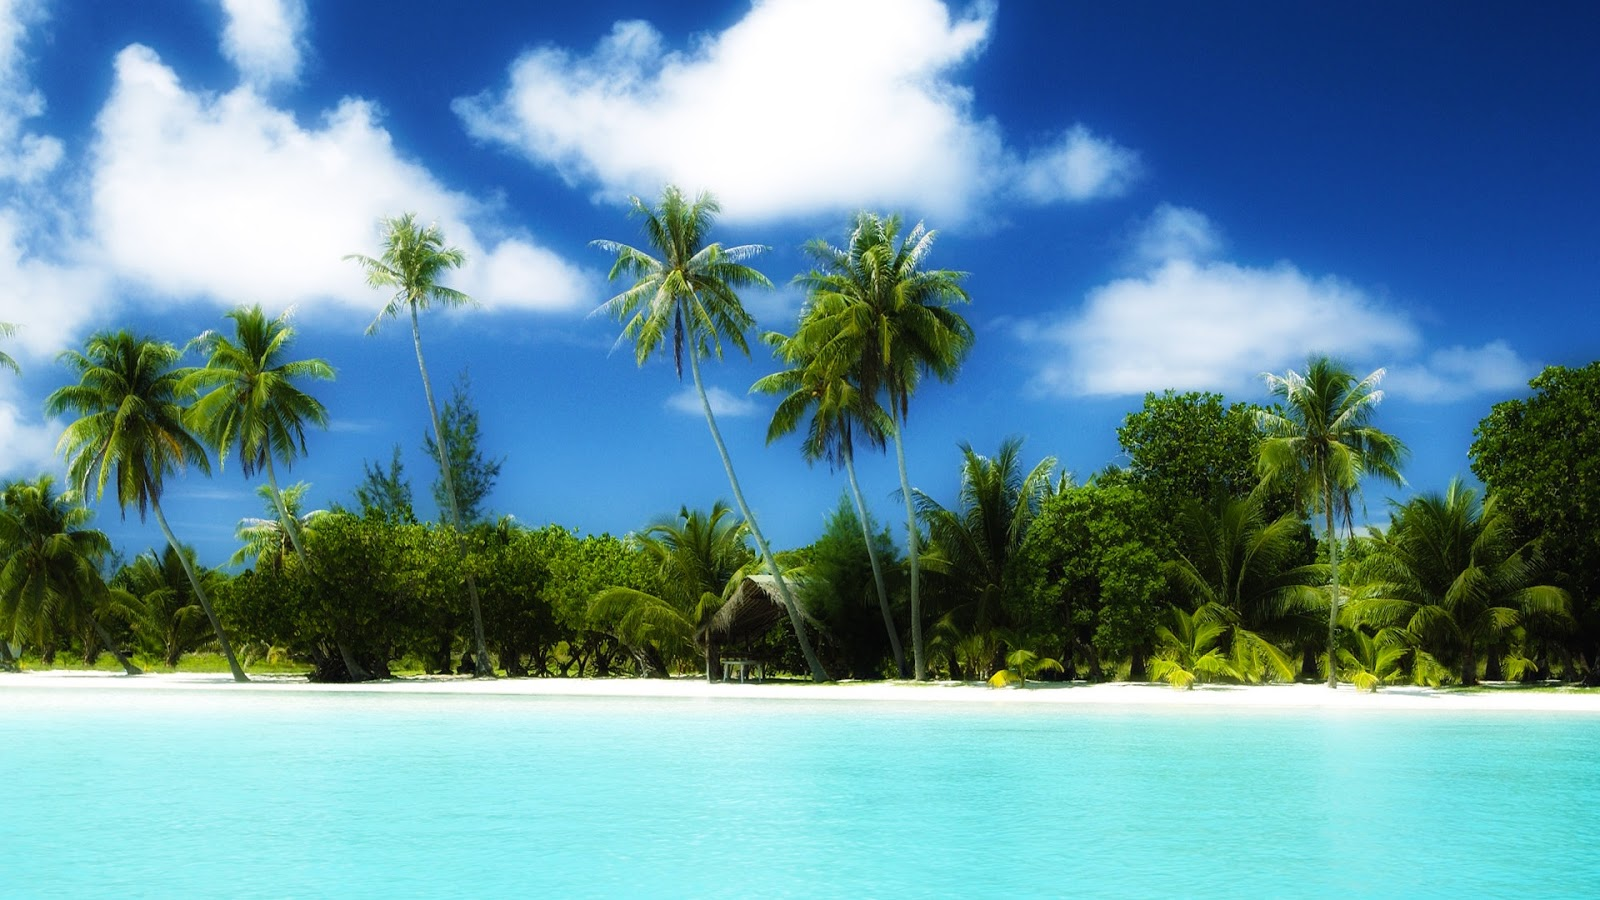 hdr wallpapers 1080p tropical - photo #11